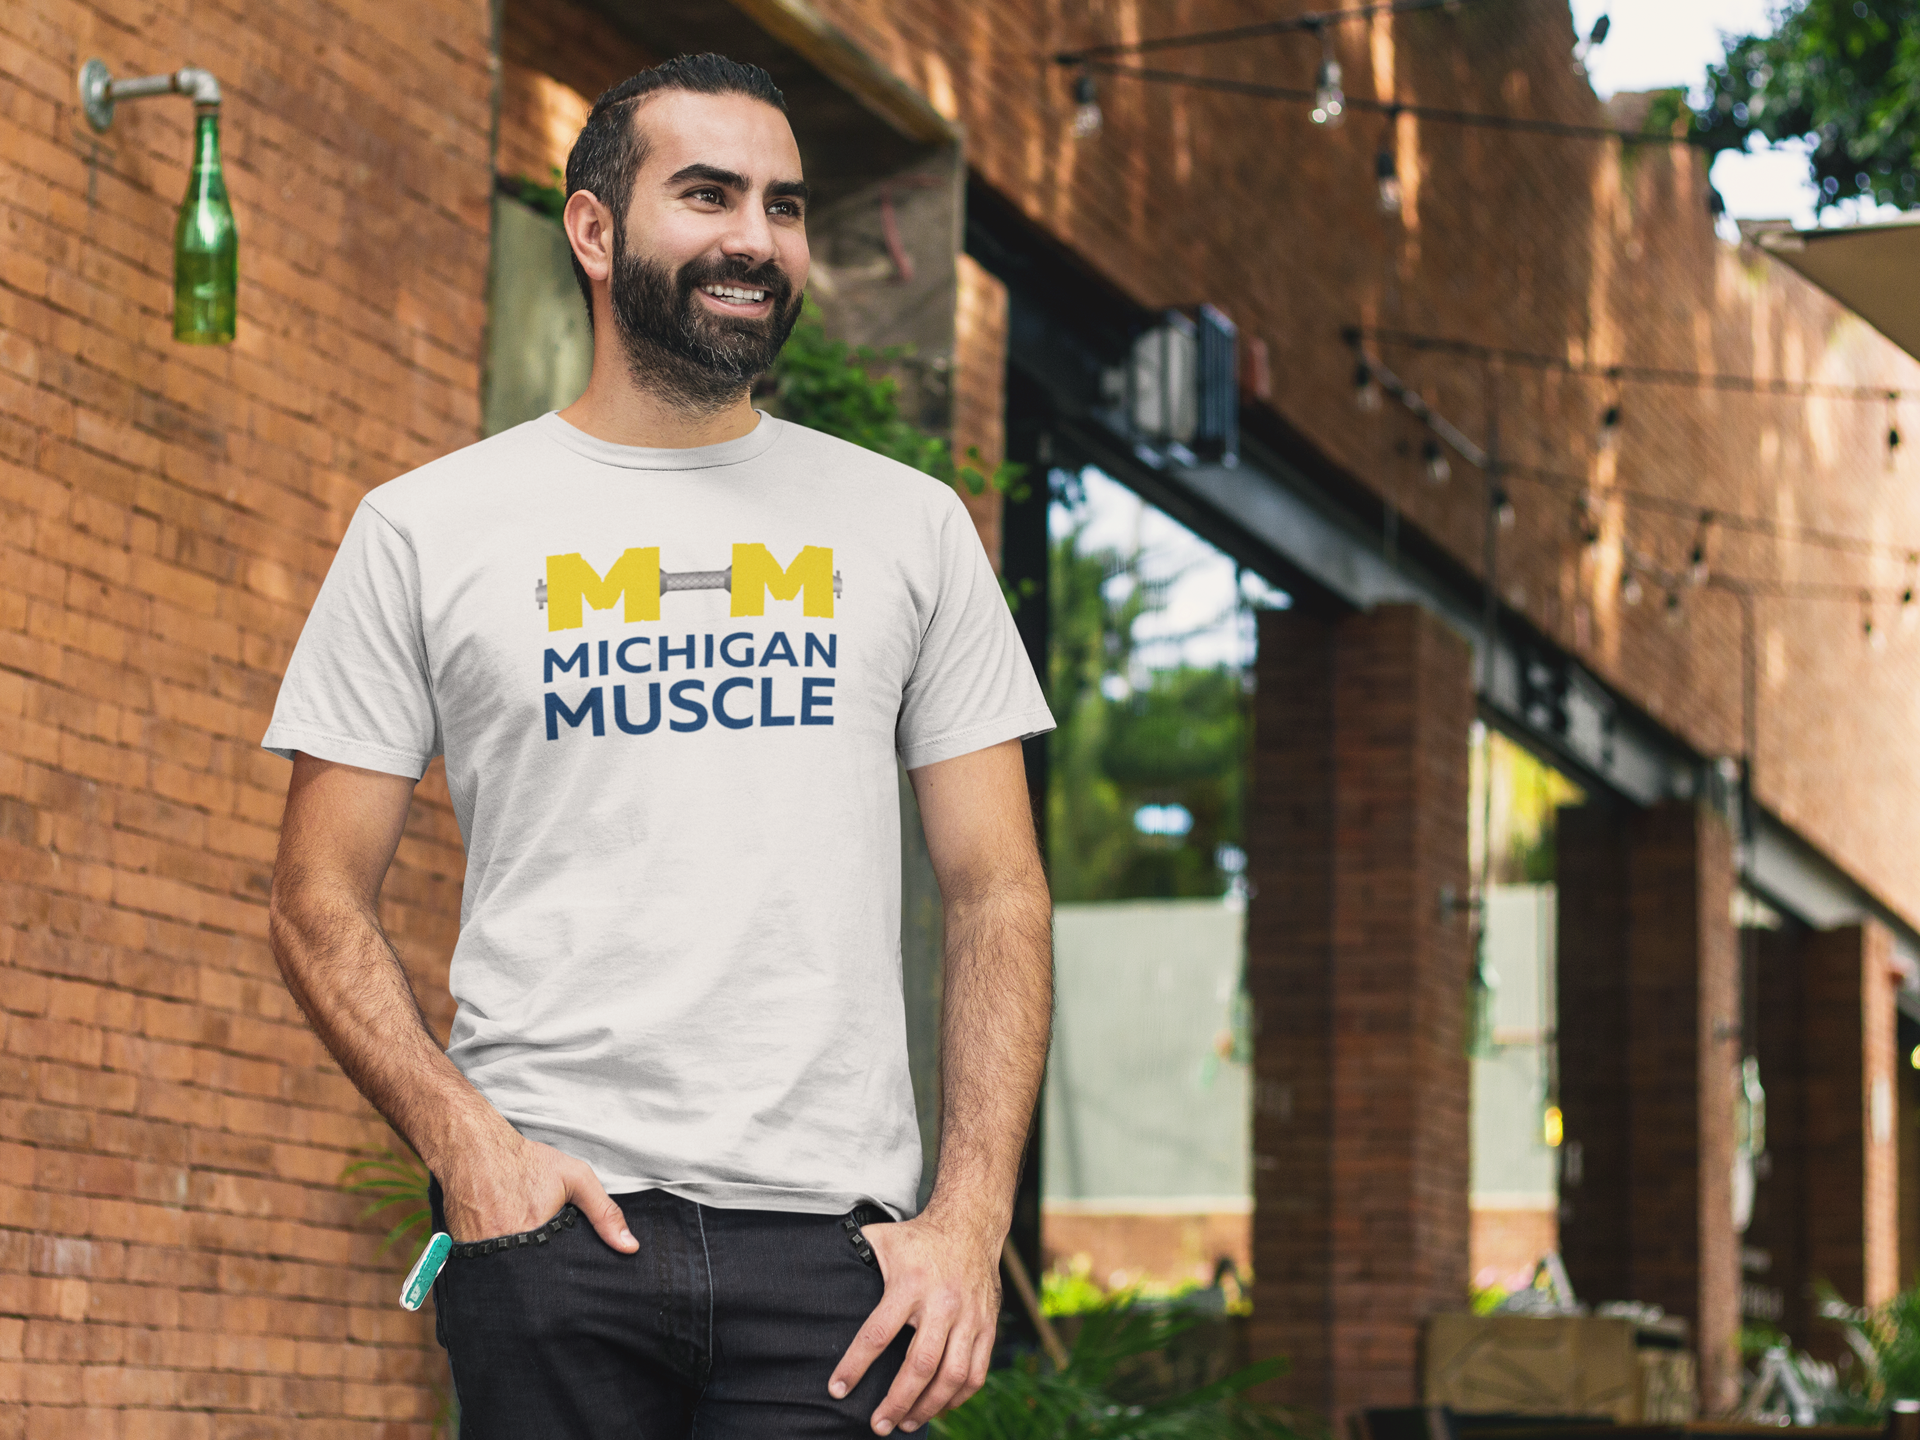 Limited Edition Michigan Muscle - m m michigan muscle Products ...